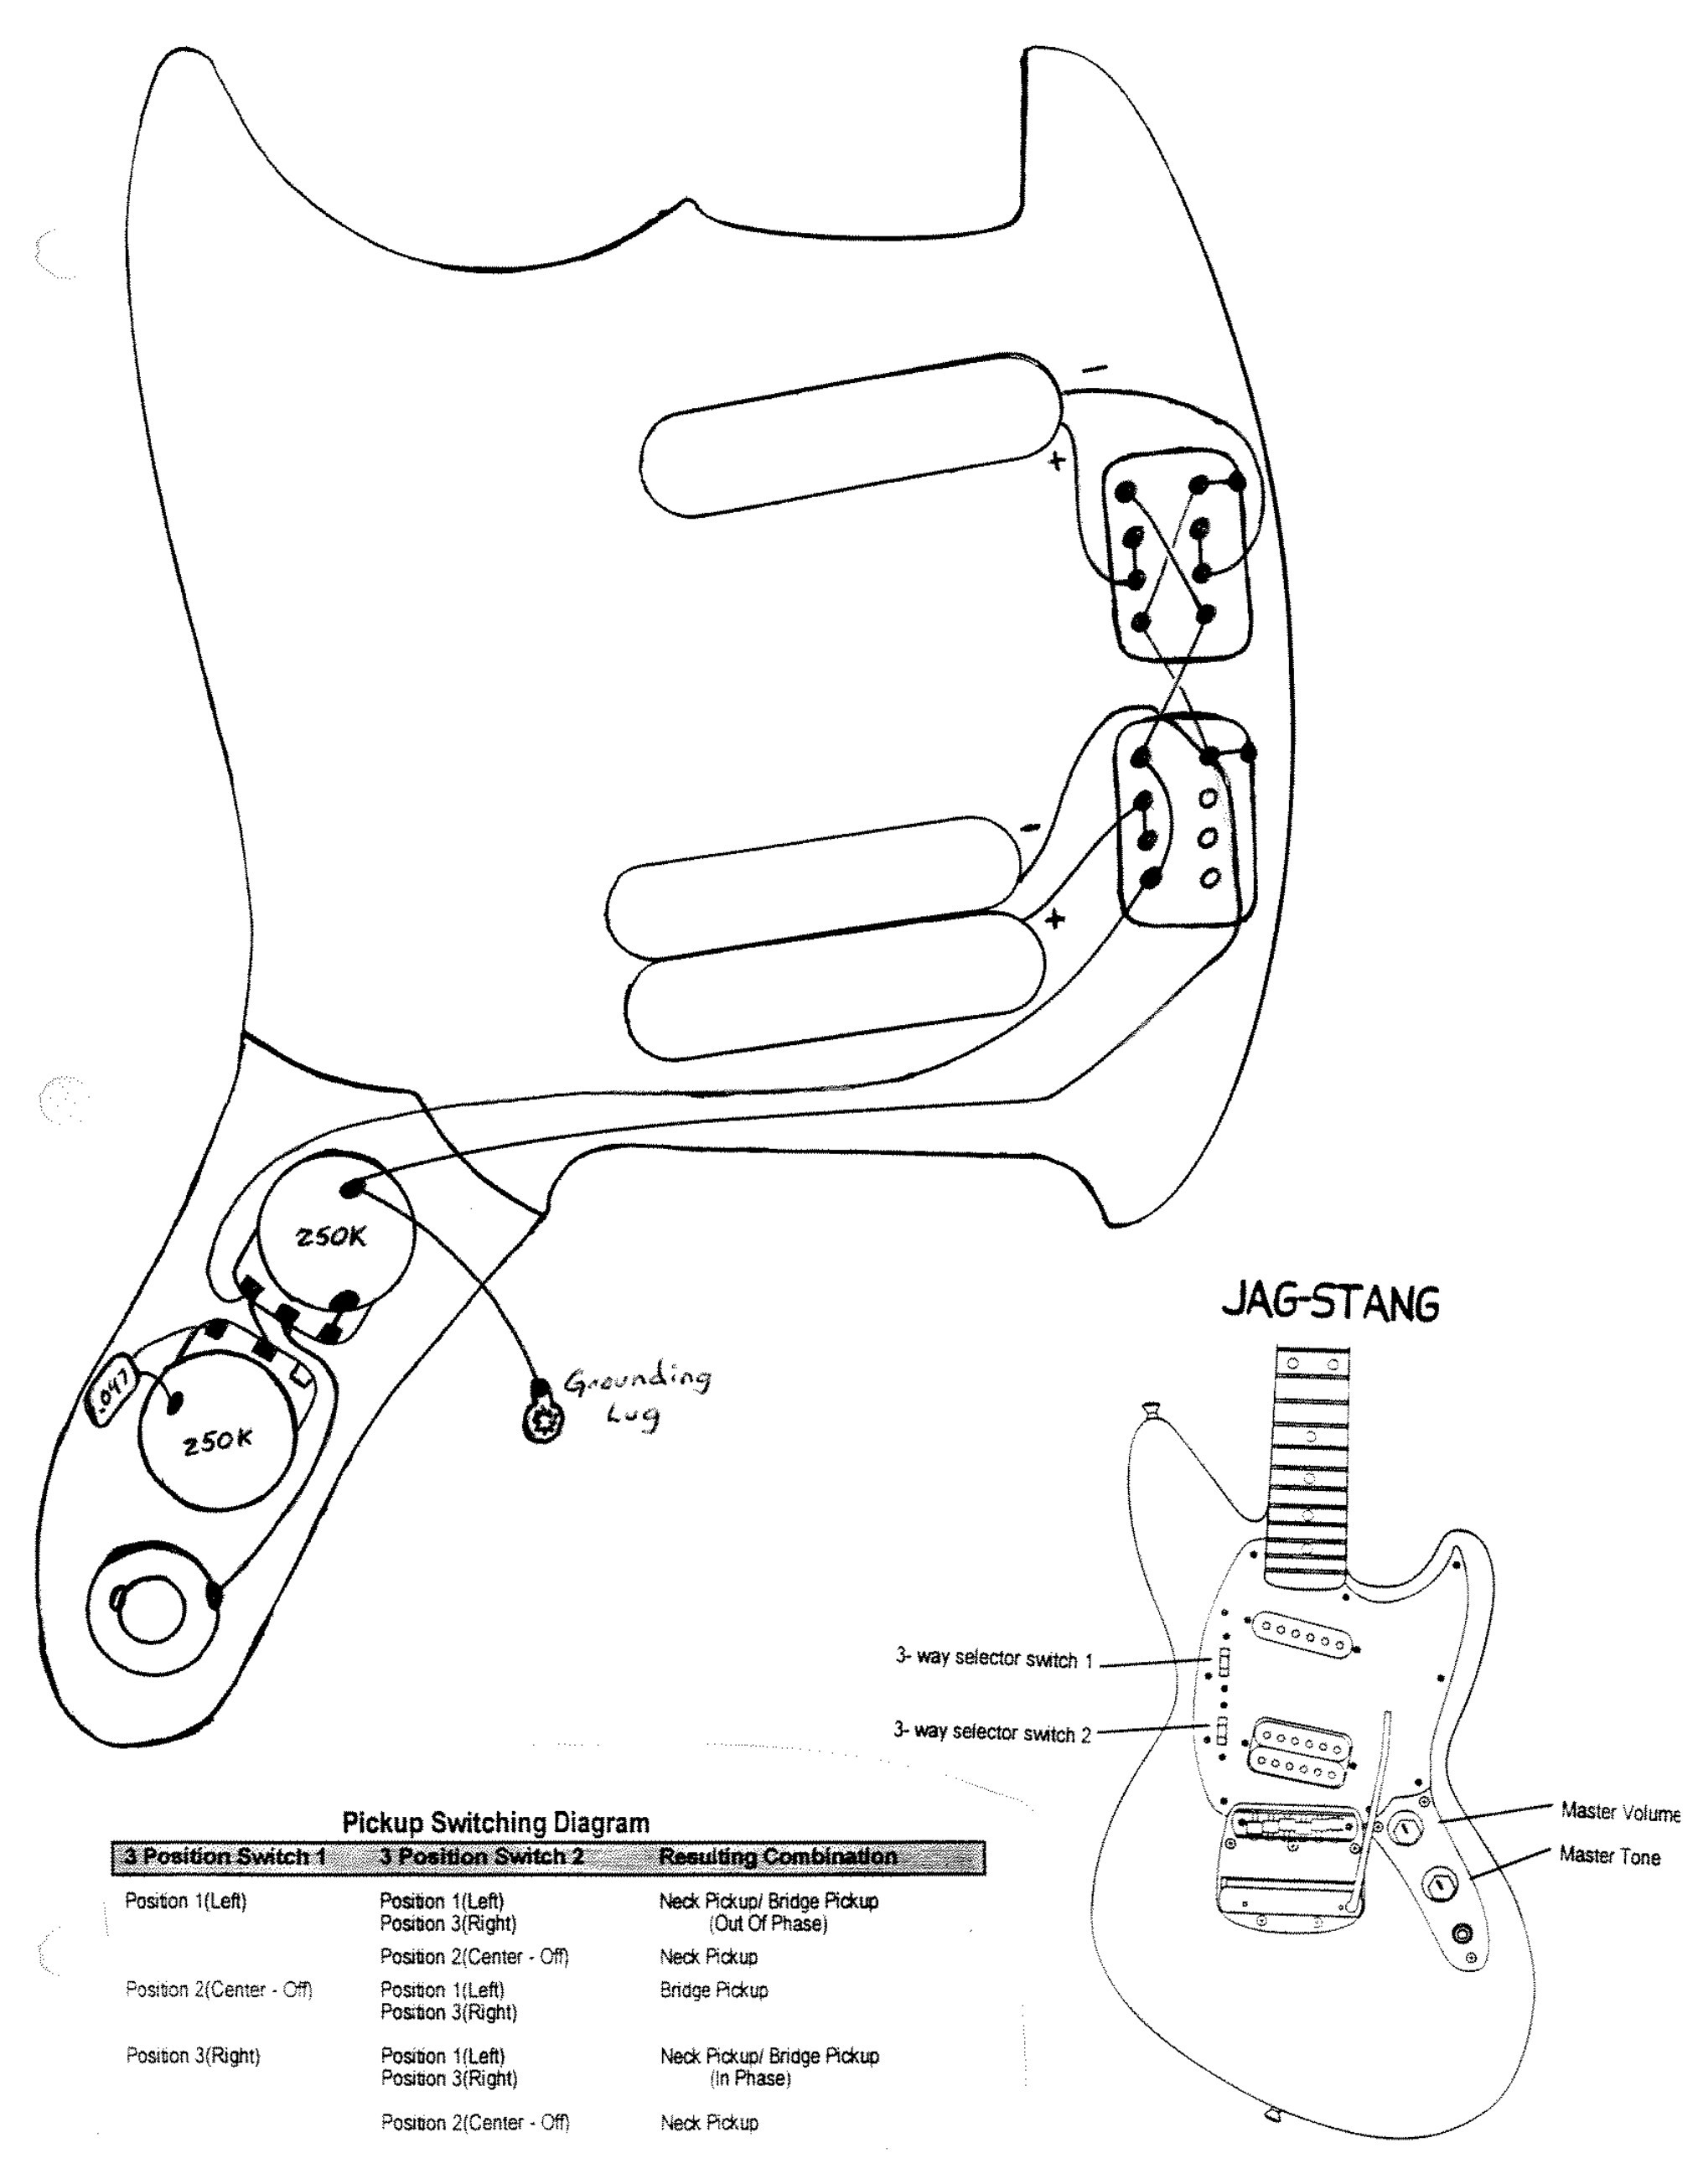 Wiring Diagram Fender Mustang Guitar Free Downloads Mustang Guitar - Fender Mustang Wiring Diagram